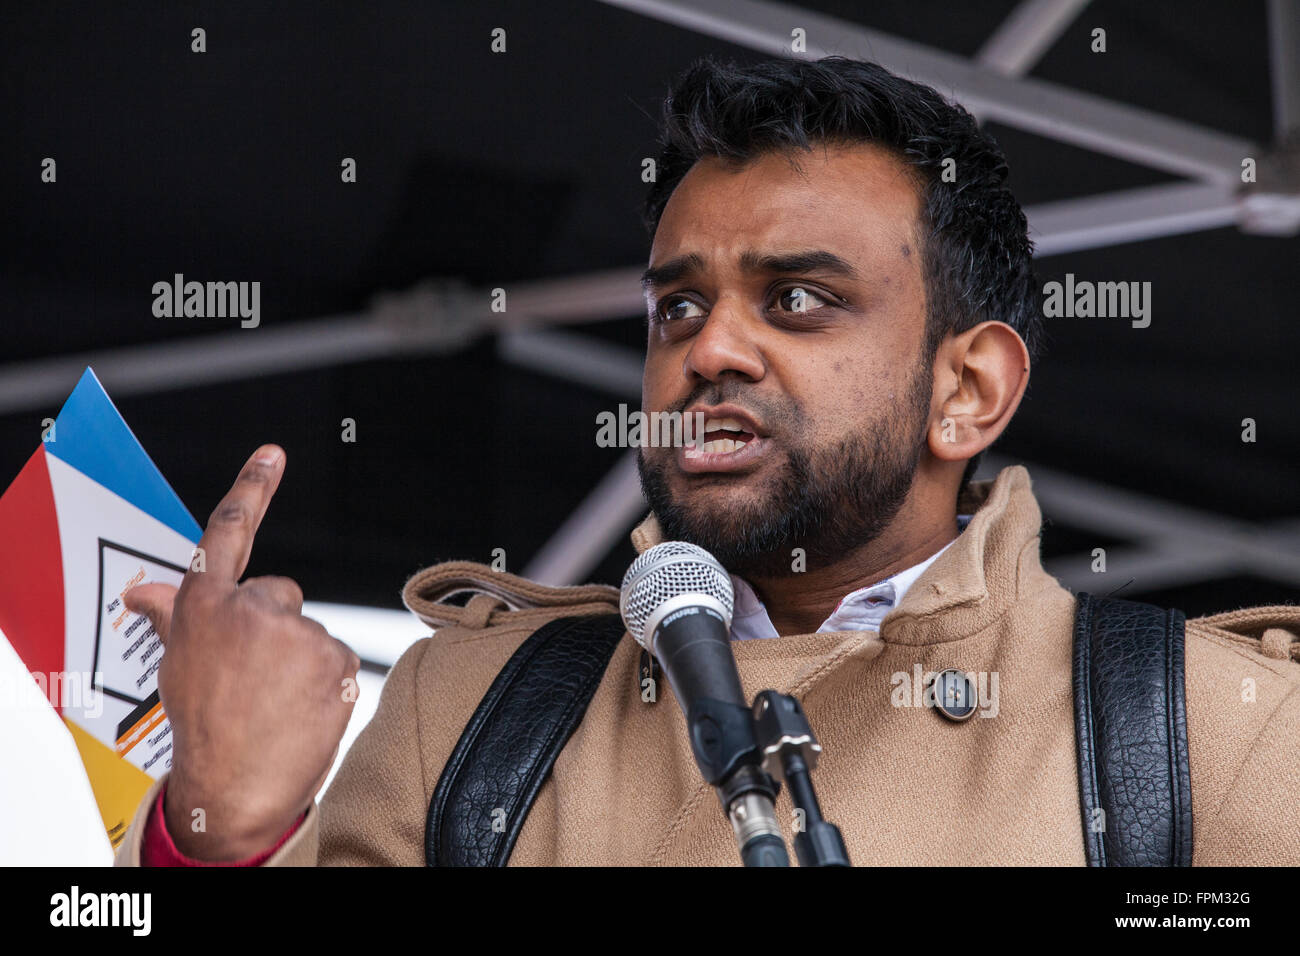 London, UK. 19th March, 2016. Shamiul Joarder of Friends of Al Aqsa addresses thousands of anti-racist campaigners - Stock Image